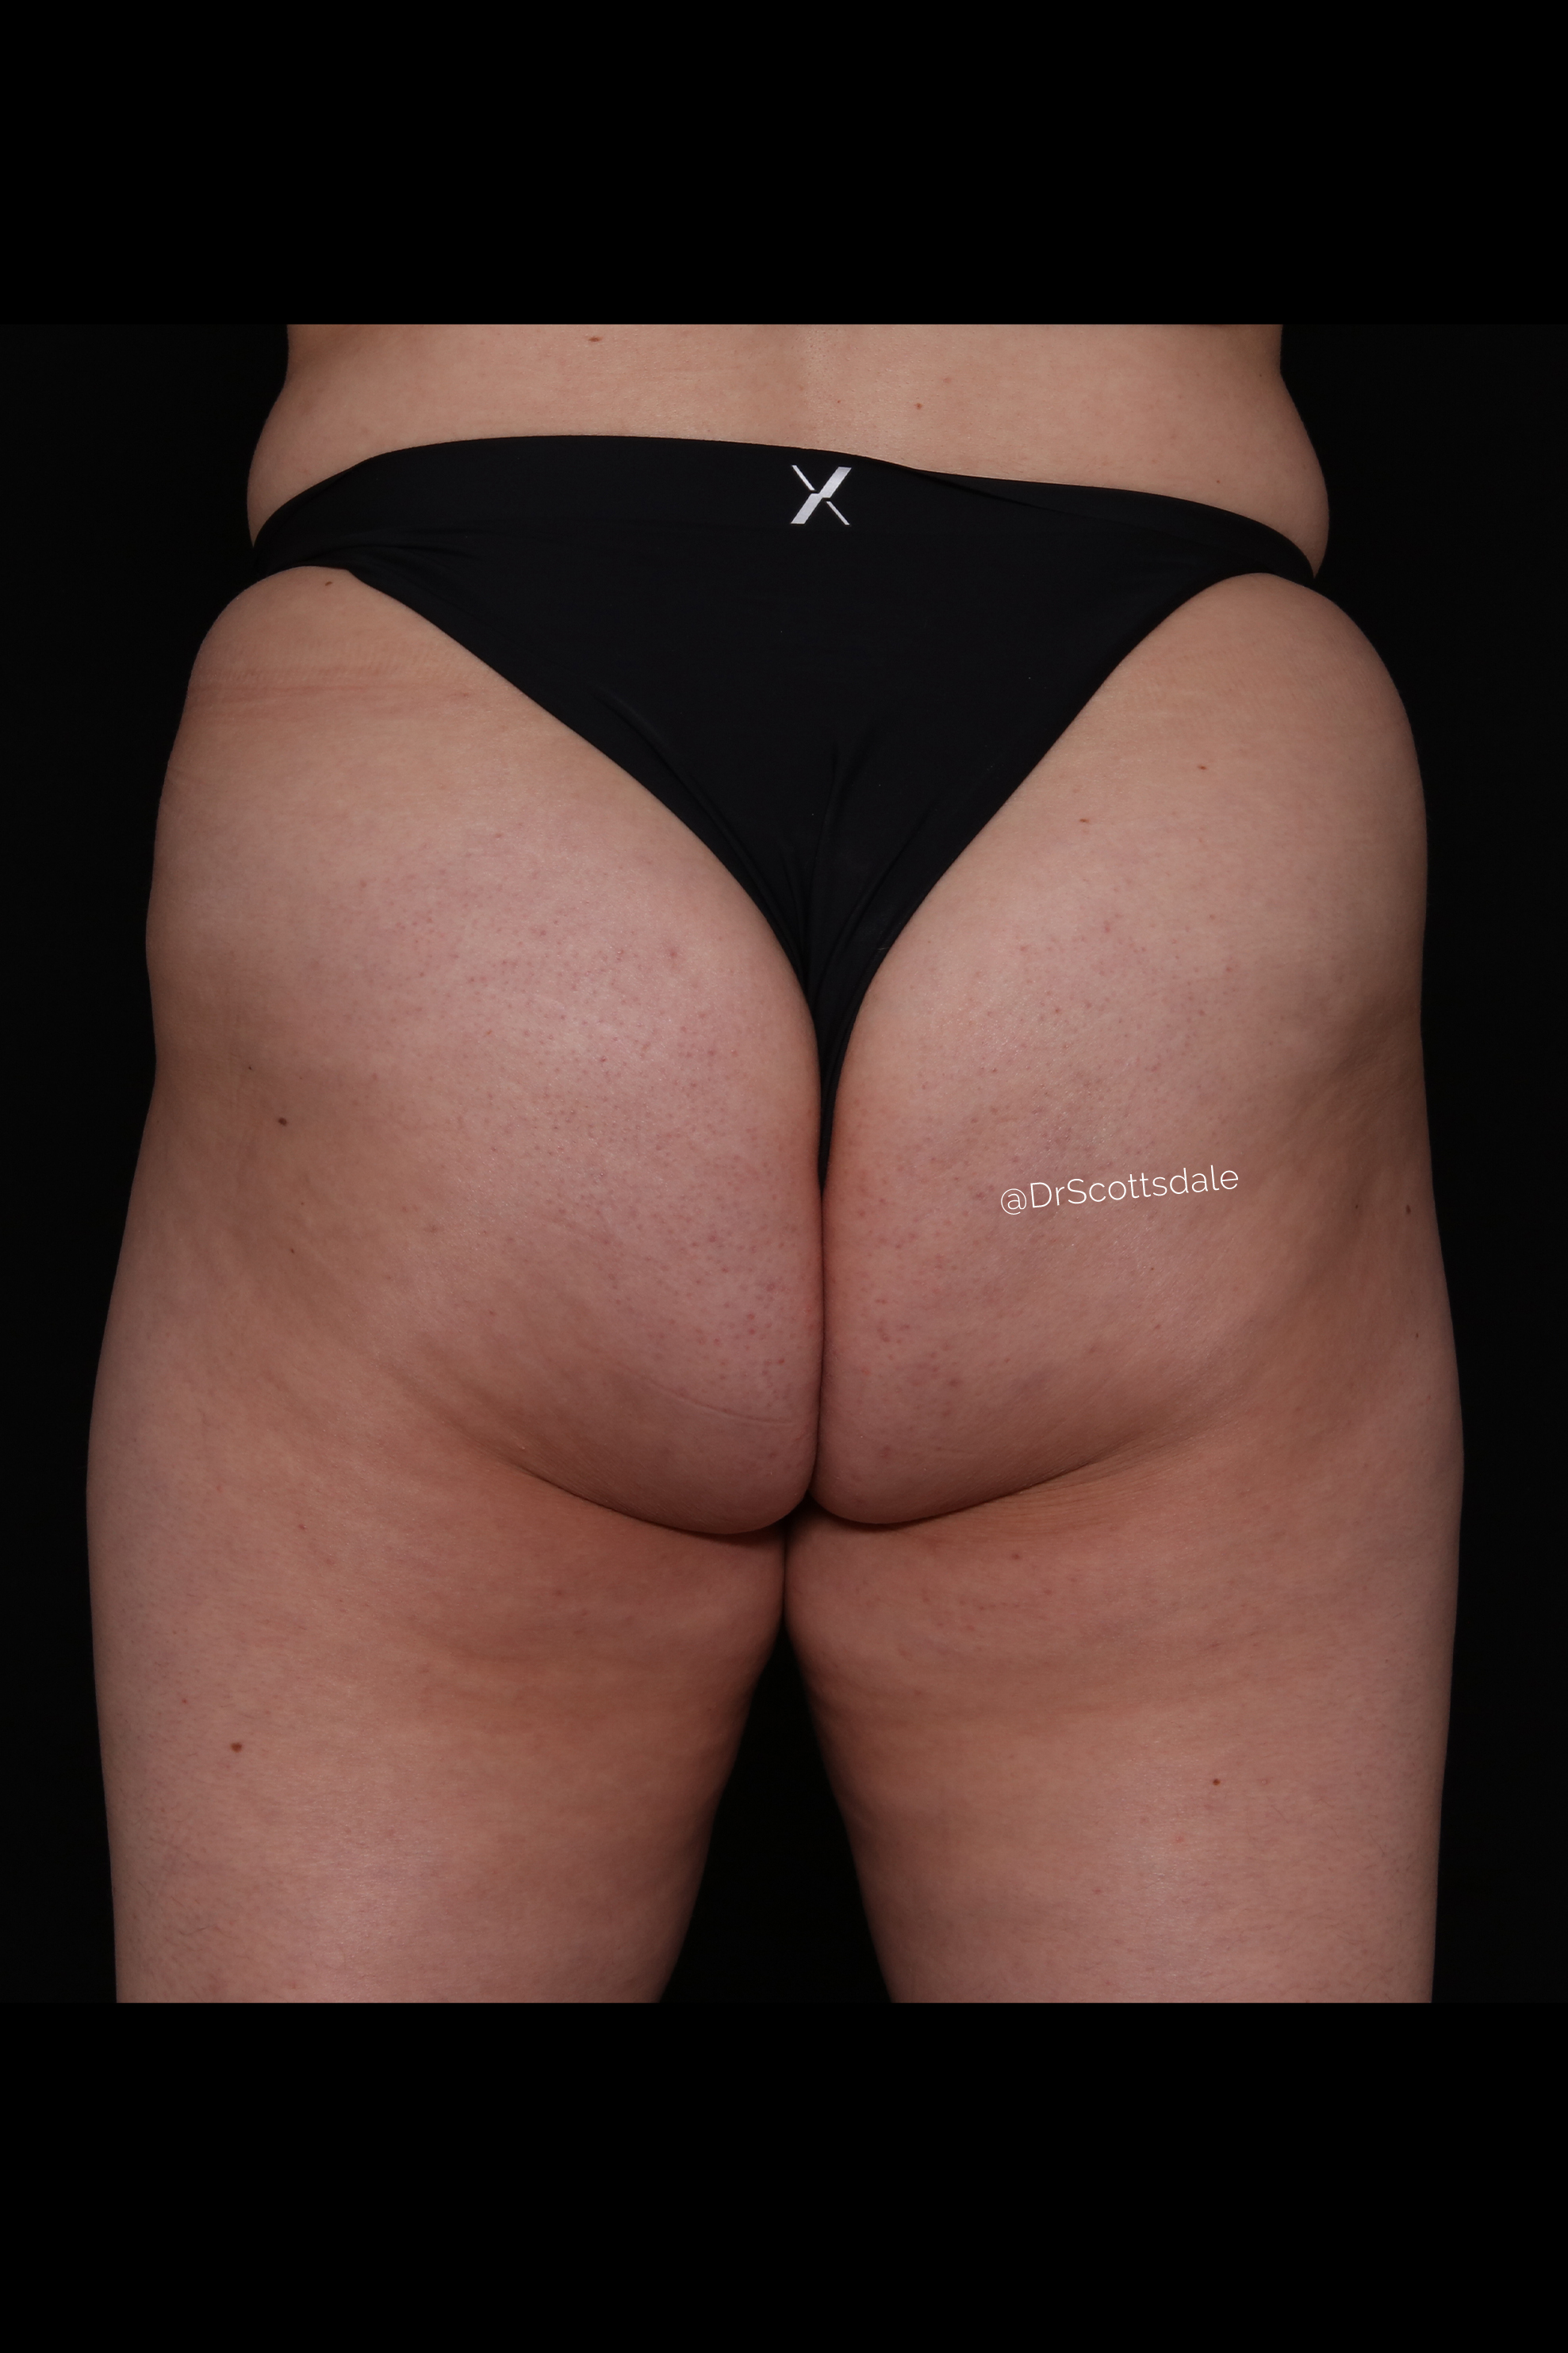 After Cellulite Reduction - Qwo